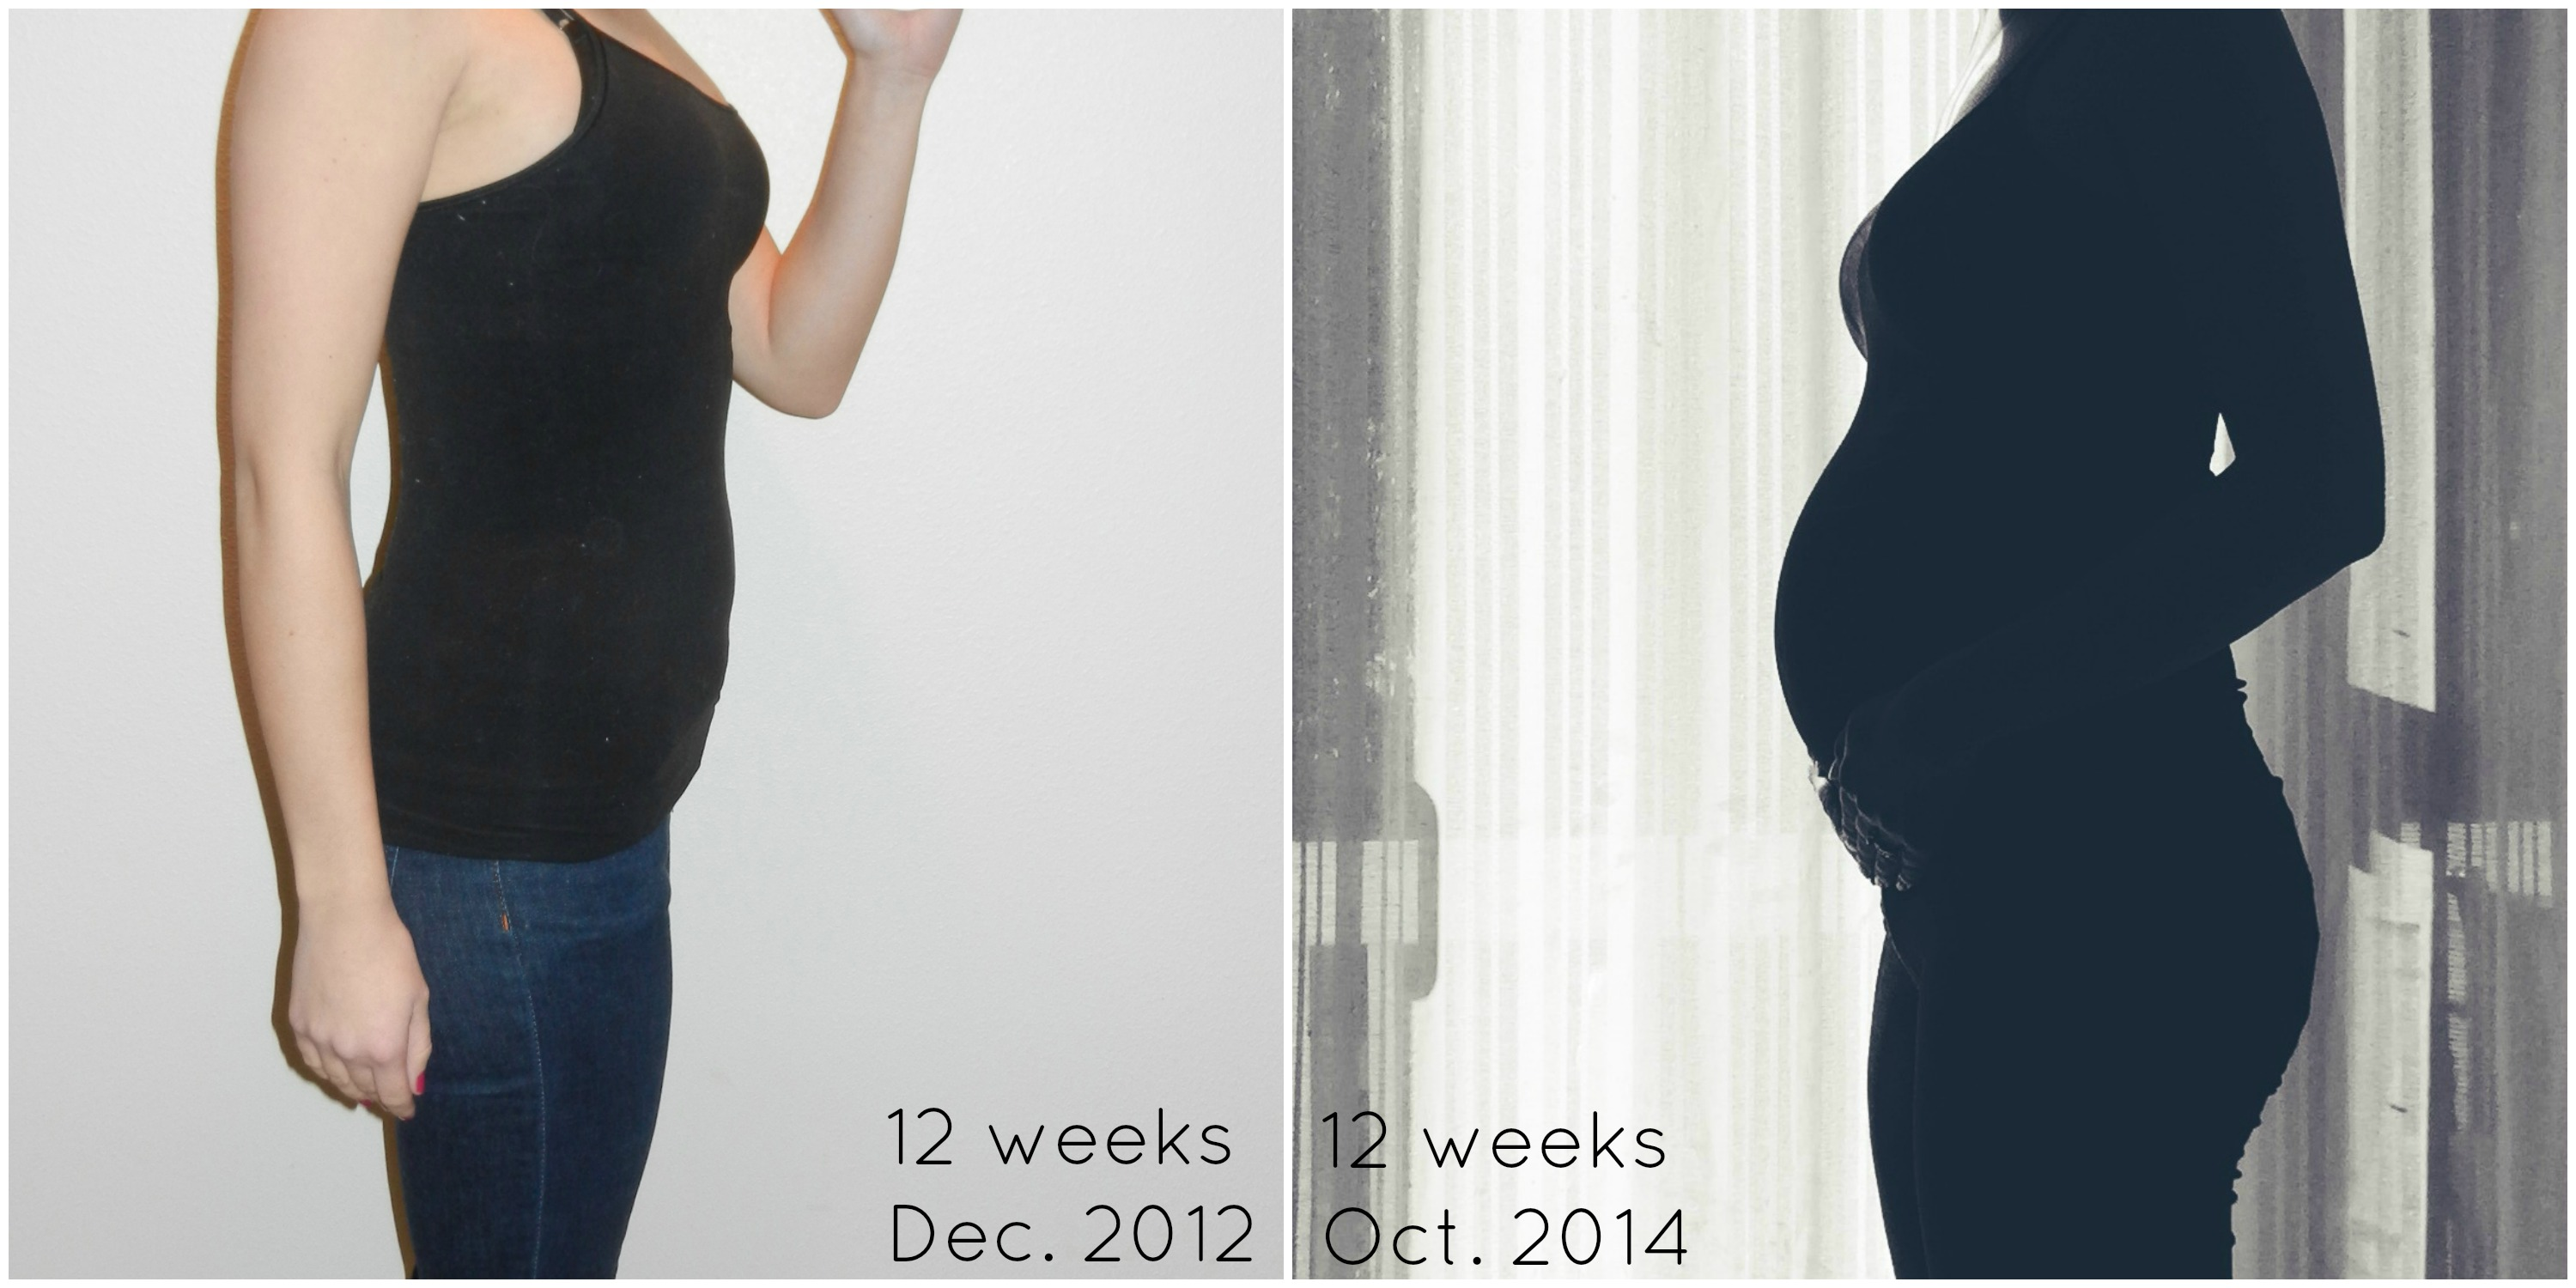 The 1st Trimester Baby 1 Vs Baby 2